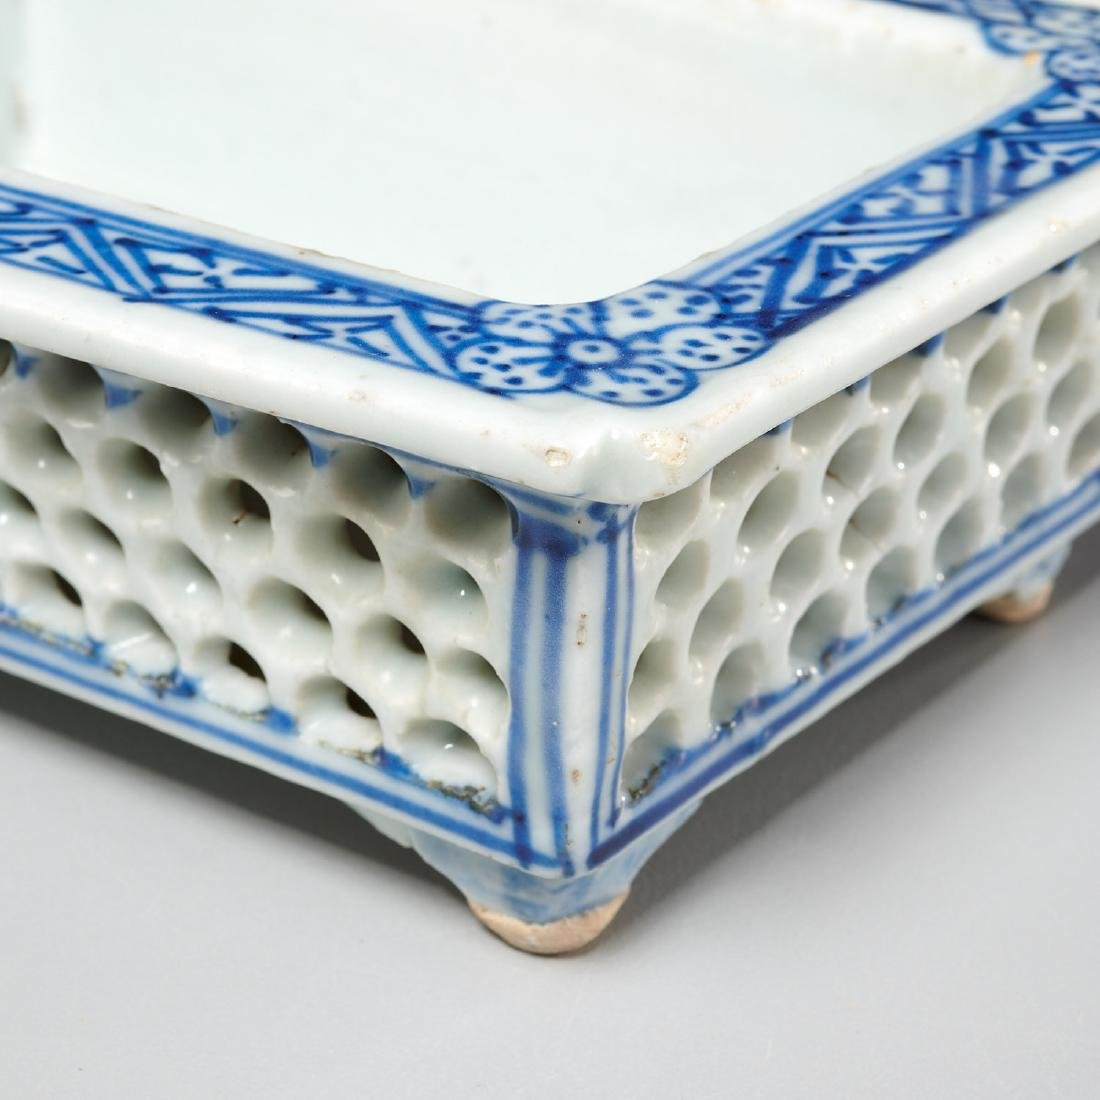 Chinese blue and white reticulated jardiniere - 2